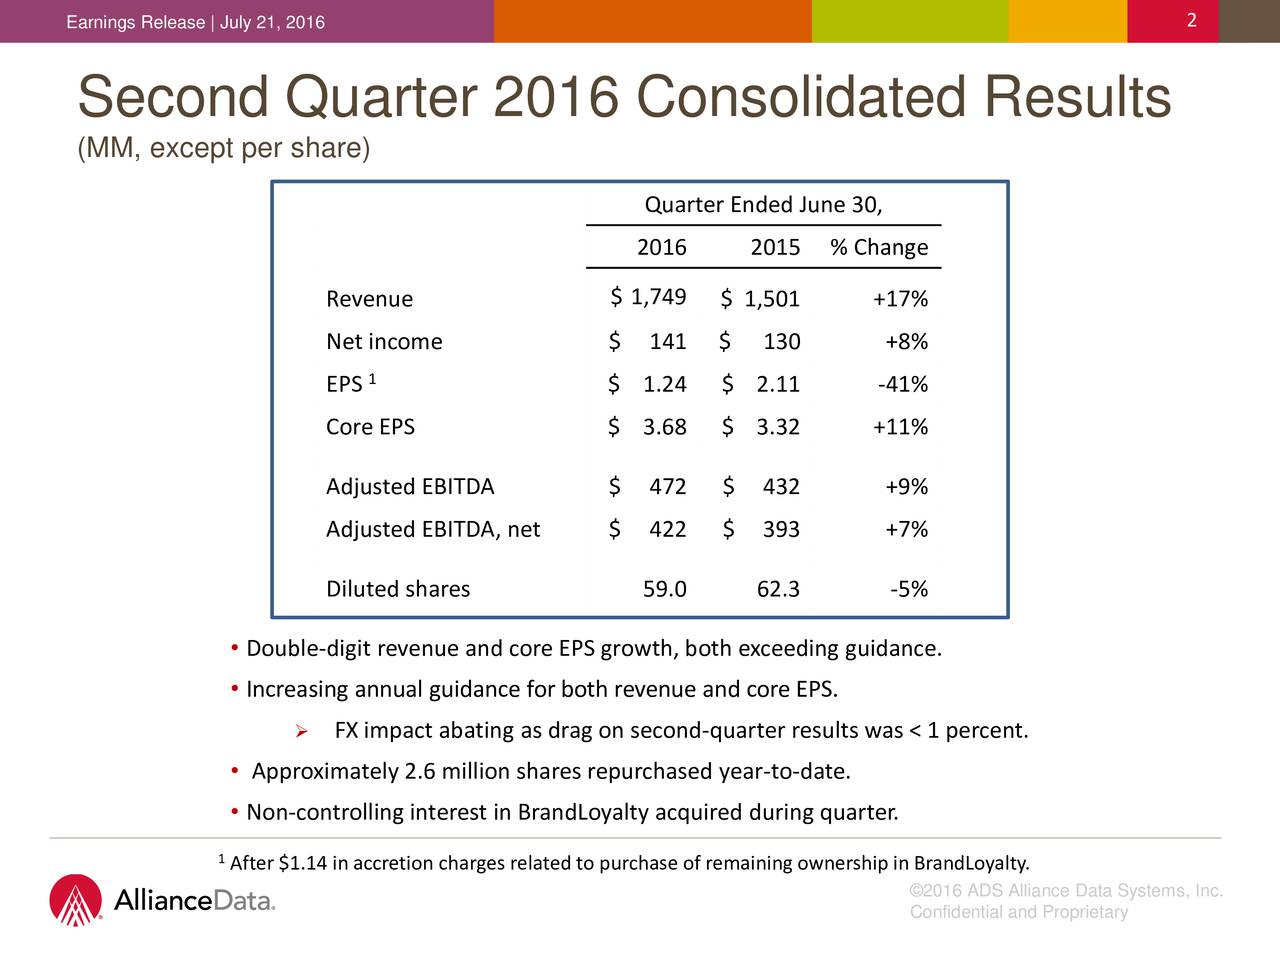 Second Quarter 2016 Consolidated Results (MM, except per share) Quarter Ended June 30, 2016 2015 % Change Revenue $ 1,749 $ 1,501 +17% Net income $ 141 $ 130 +8% EPS1 $ 1.24 $ 2.11 -41% Core EPS $ 3.68 $ 3.32 +11% Adjusted EBITDA $ 472 $ 432 +9% Adjusted EBITDA, net $ 422 $ 393 +7% Diluted shares 59.0 62.3 -5% Double-digit revenue and core EPS growth, both exceeding guidance. Increasing annual guidance for both revenue and core EPS. FX impact abating as drag on second-quarter results was < 1 percent. Approximately 2.6 million shares repurchased year-to-date. Non-controlling interest in BrandLoyalty acquired during quarter. 1After $1.14 in accretion charges related to purchase of remainingownership in BrandLoyalty. 2016 ADS Alliance Data Systems, Inc. Confidential and Proprietary